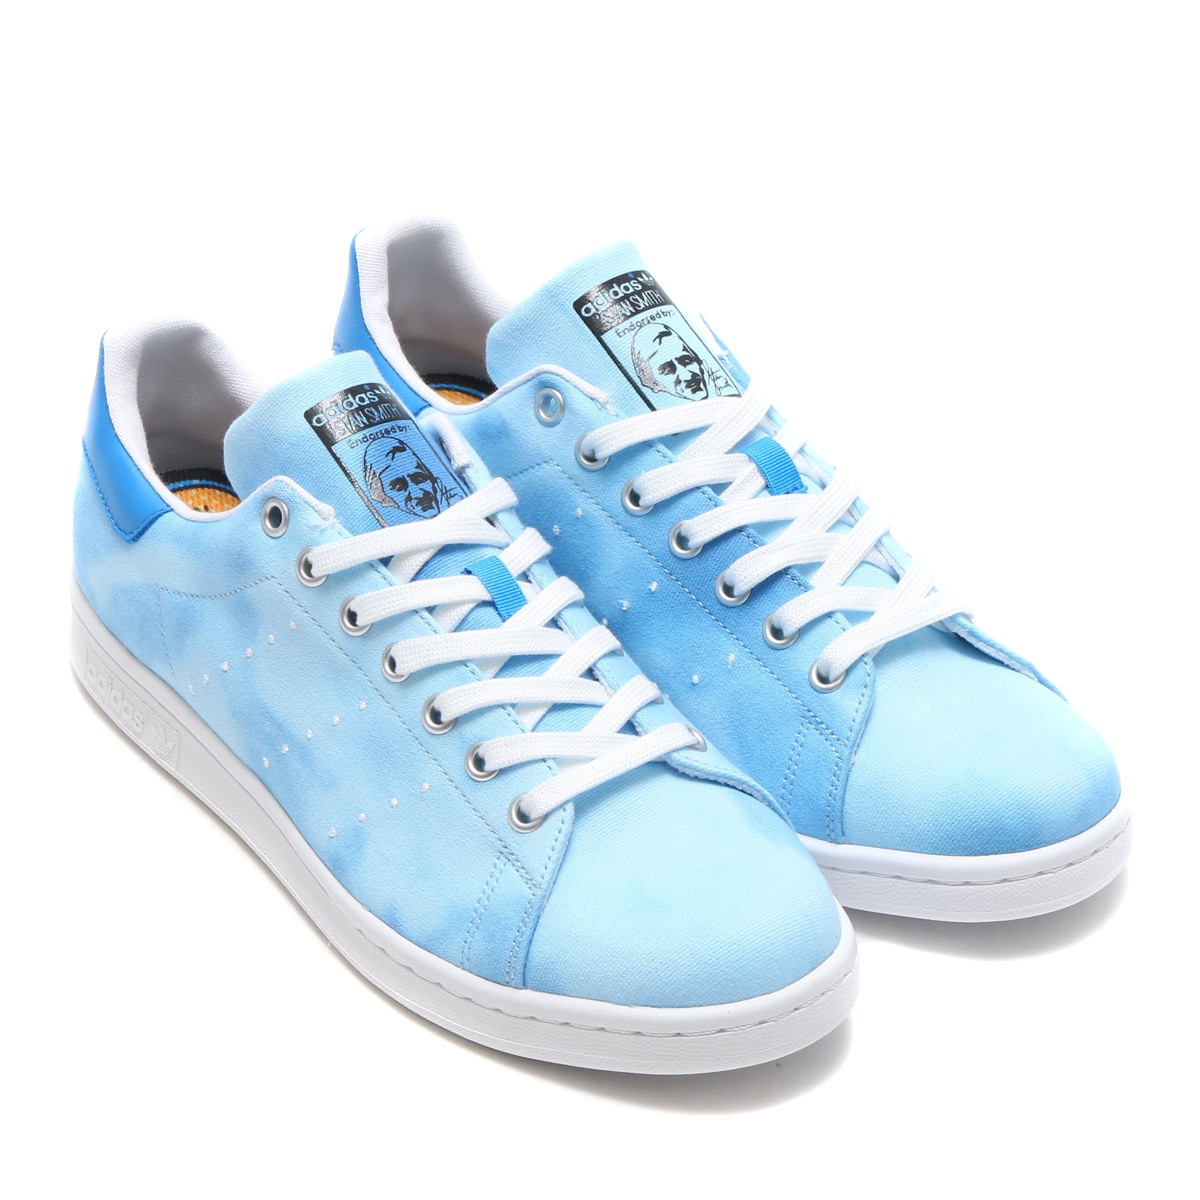 purchase cheap 0d306 9572e adidas Originals PW HU HOLI STAN SMITH (Adidas originals Farrell Williams  HU HOLI Stan Smith) Blue / Running White / Running White 18SS-S